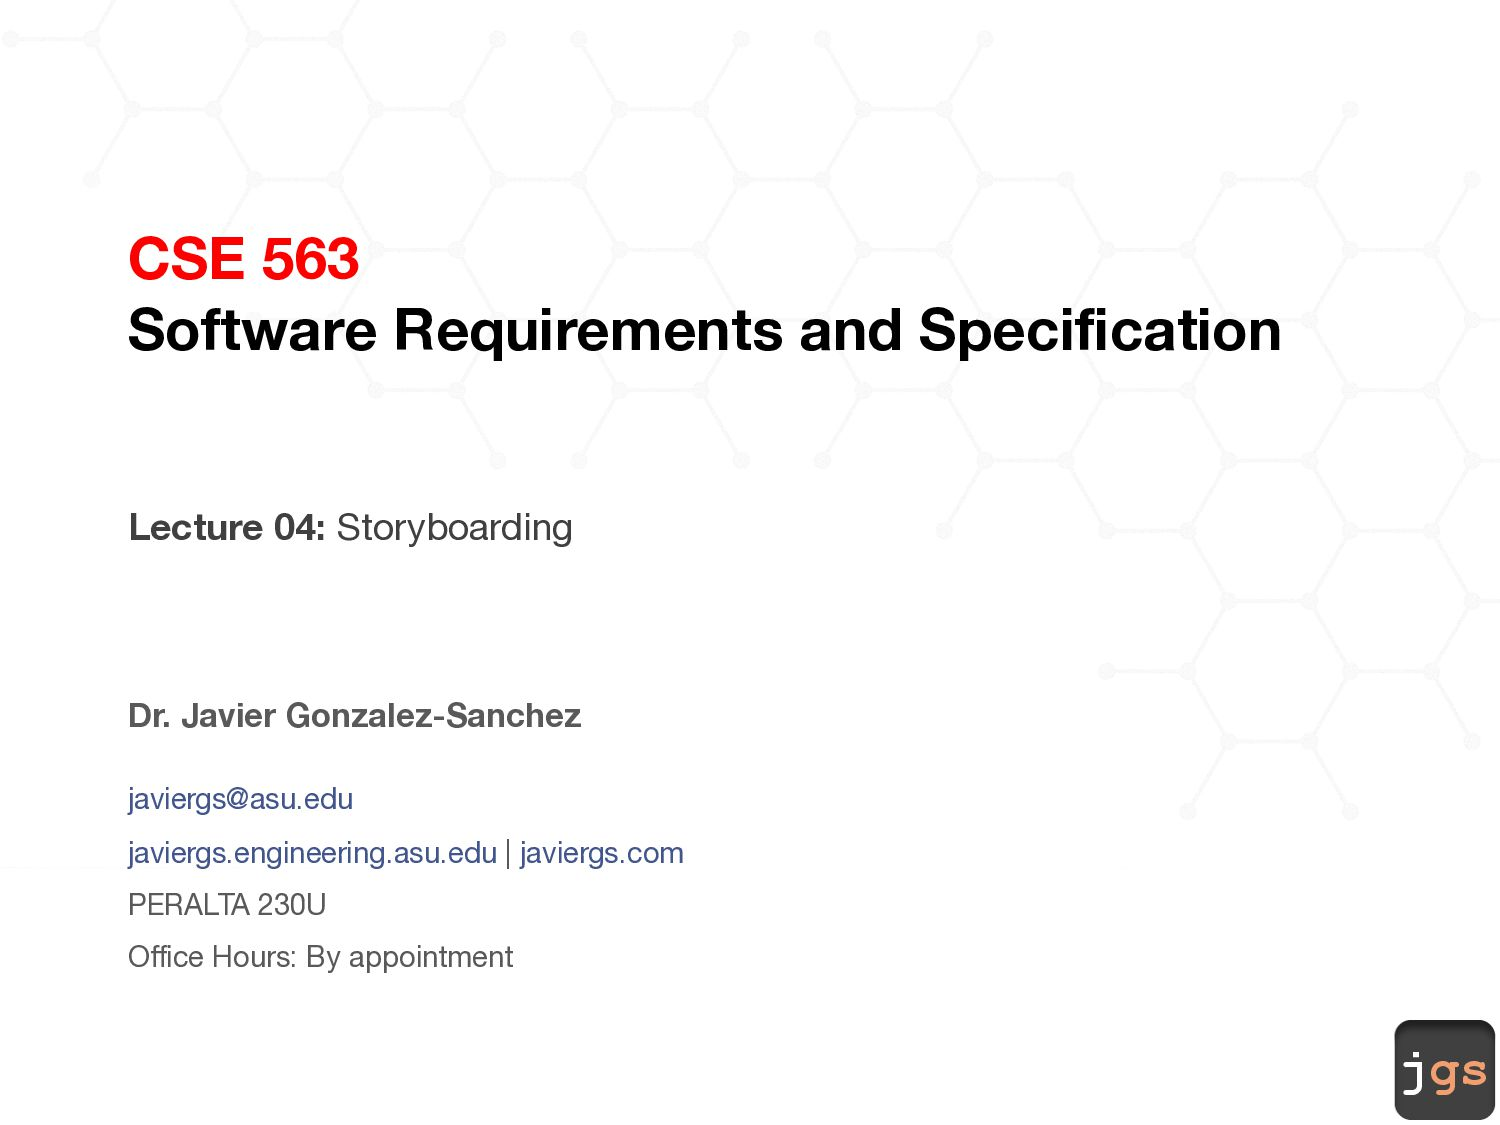 jgs CSE 563 Software Requirements and Specifica...